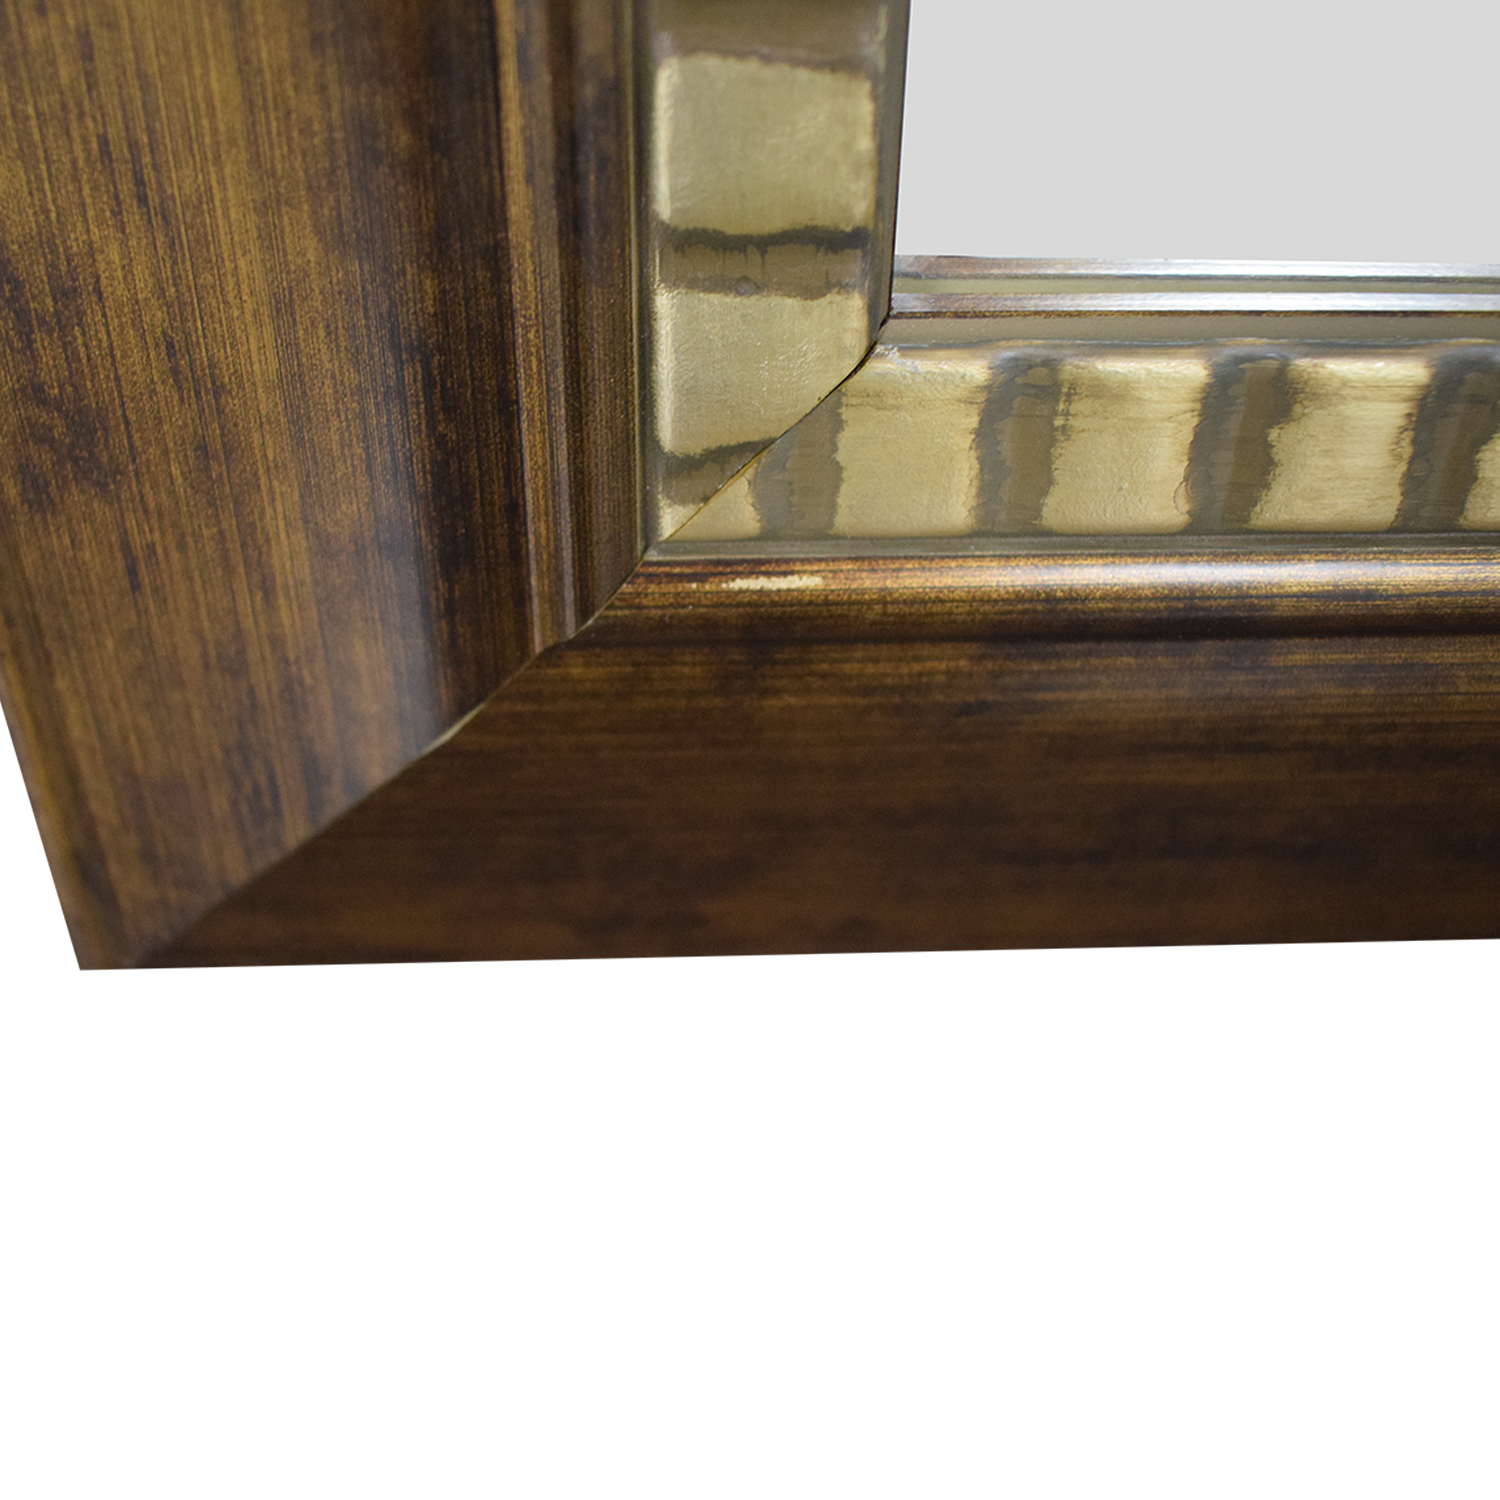 Distressed Framed Wall Mirror / Mirrors